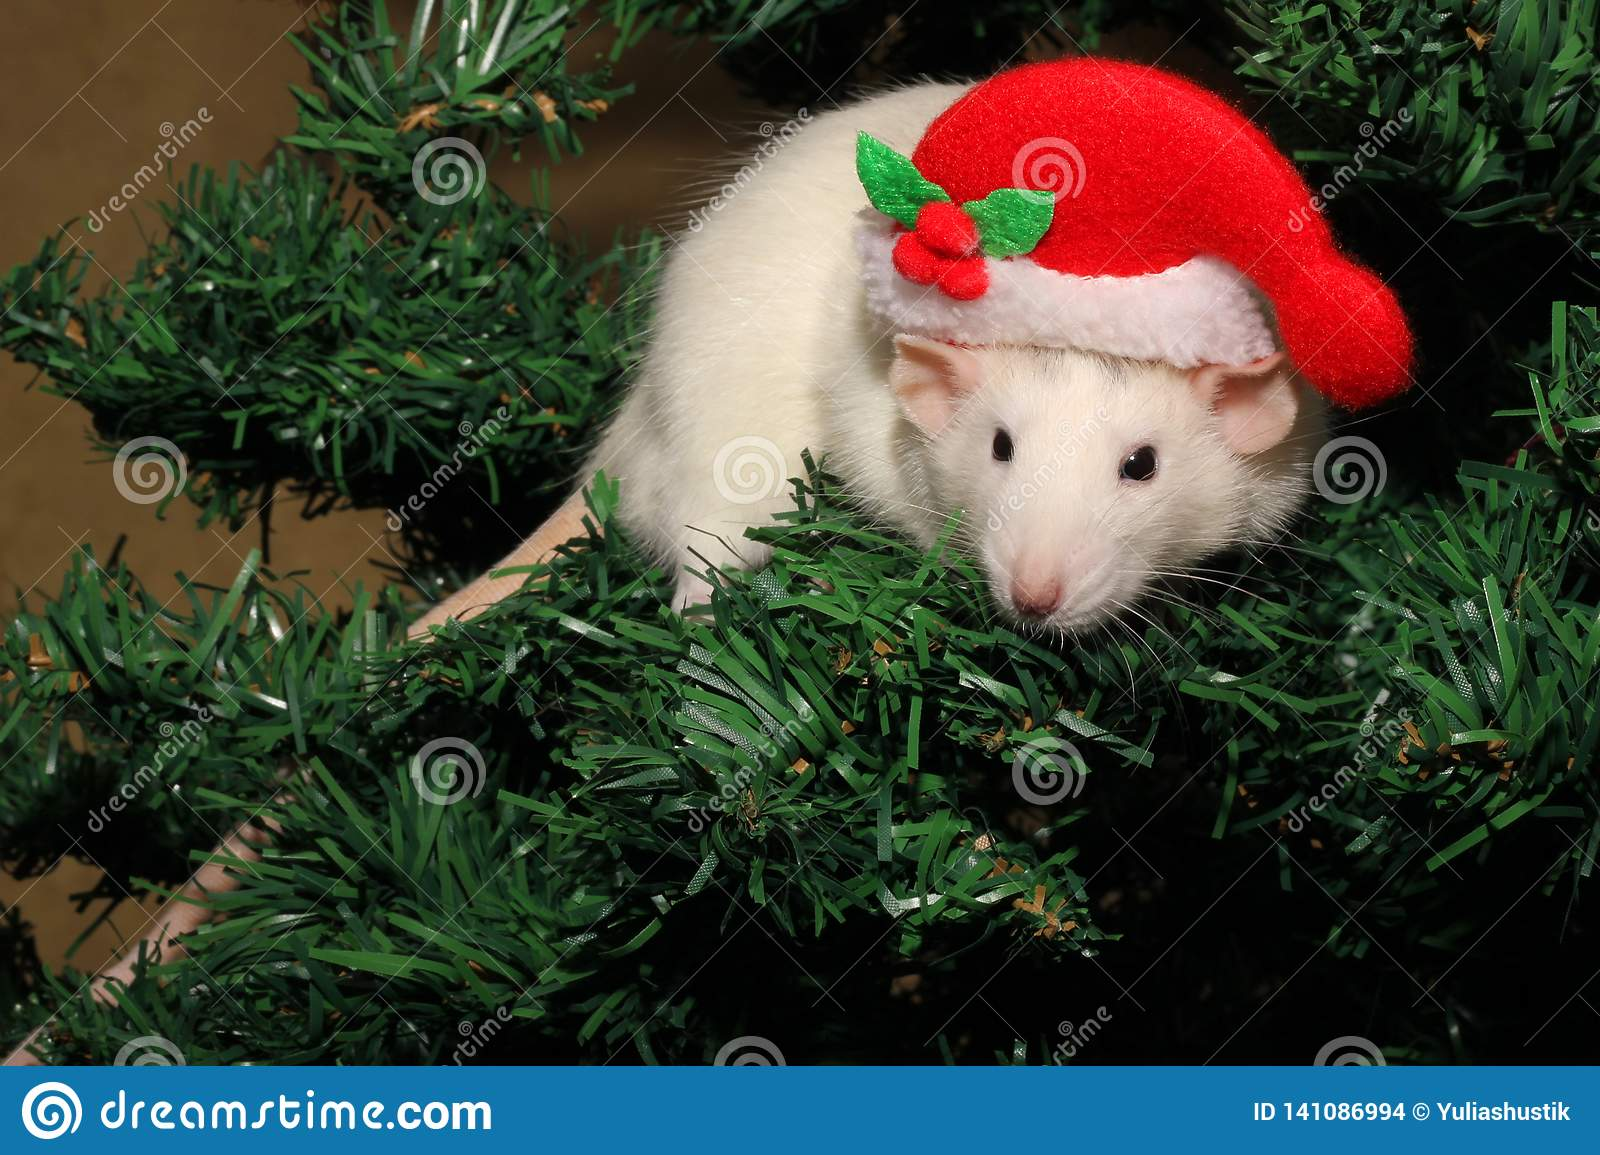 Christmas Mouse.A Rat In A Christmas Hat A Christmas Mouse Symbol Of The